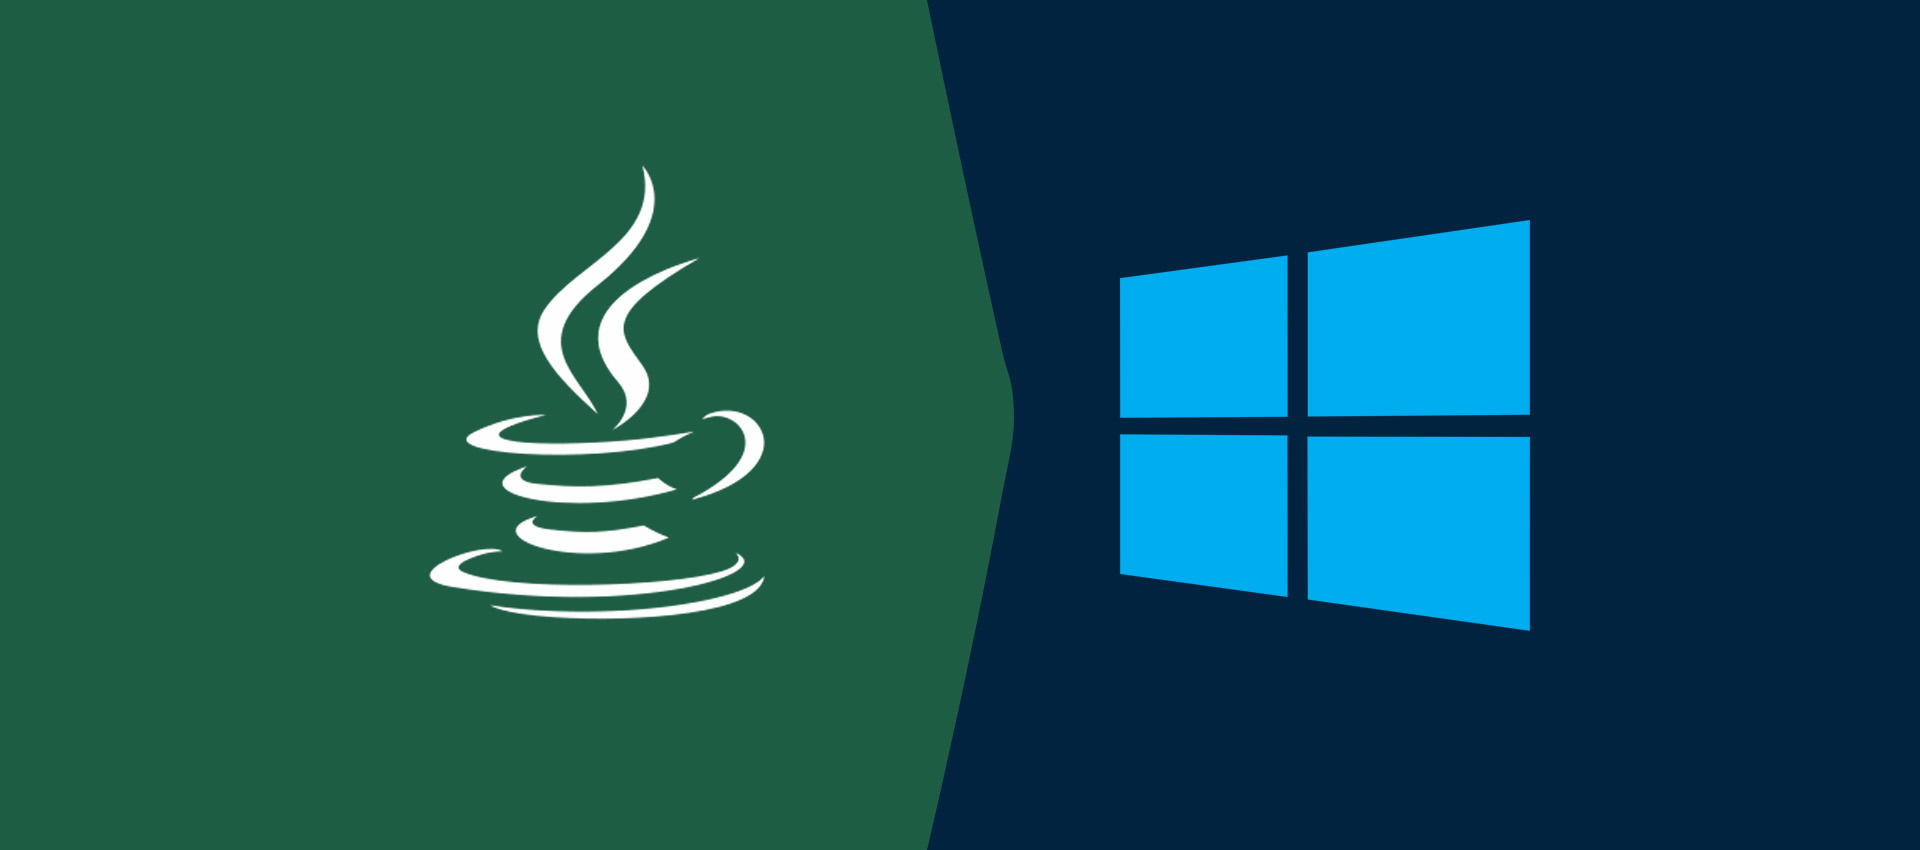 How To Install Java 13 On Windows